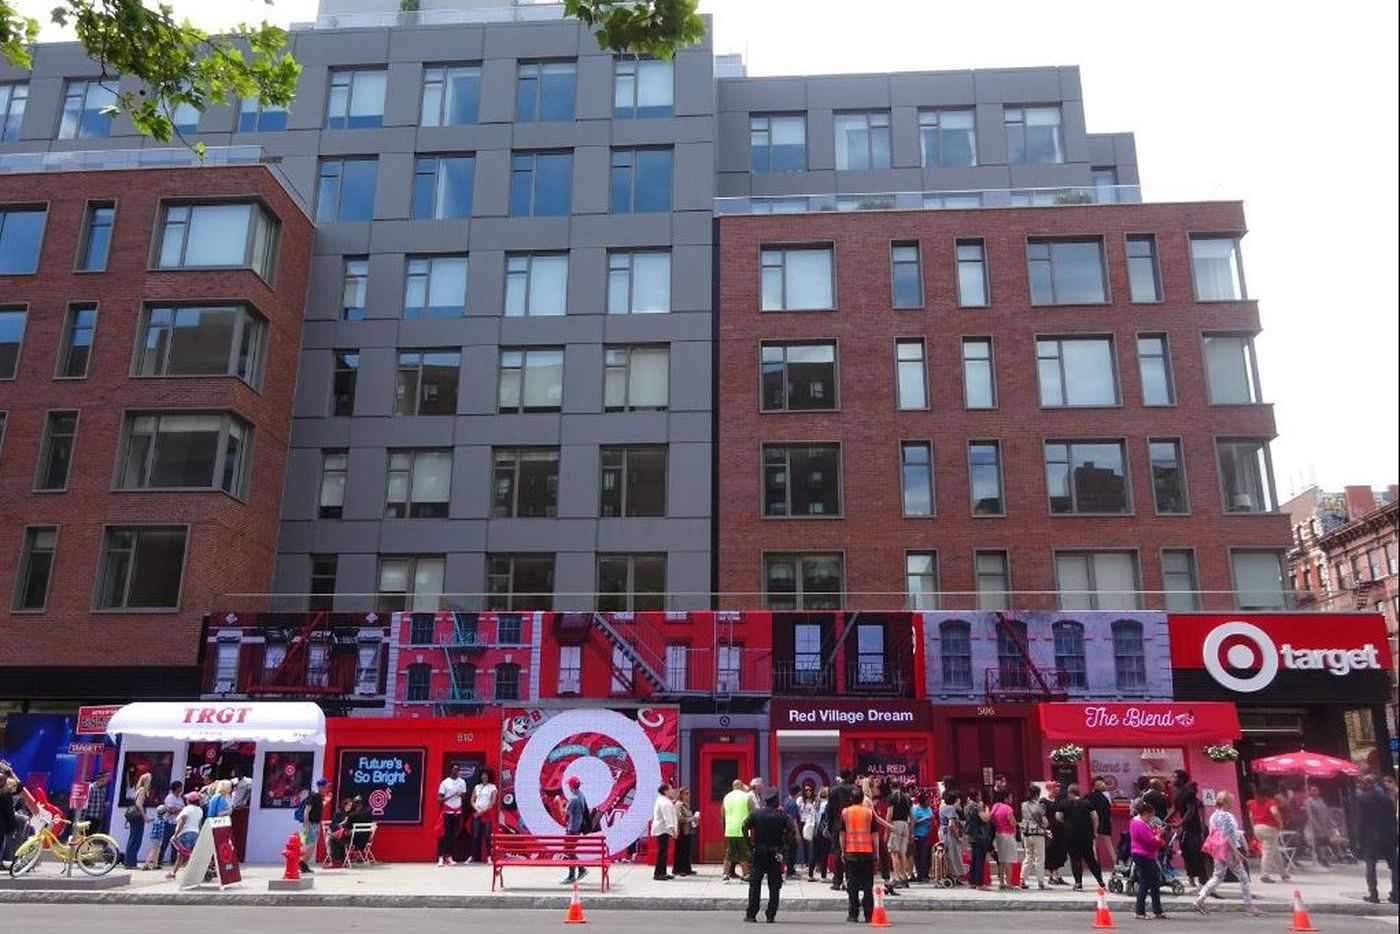 What's with the tone-deaf marketing in gentrifying neighborhoods?